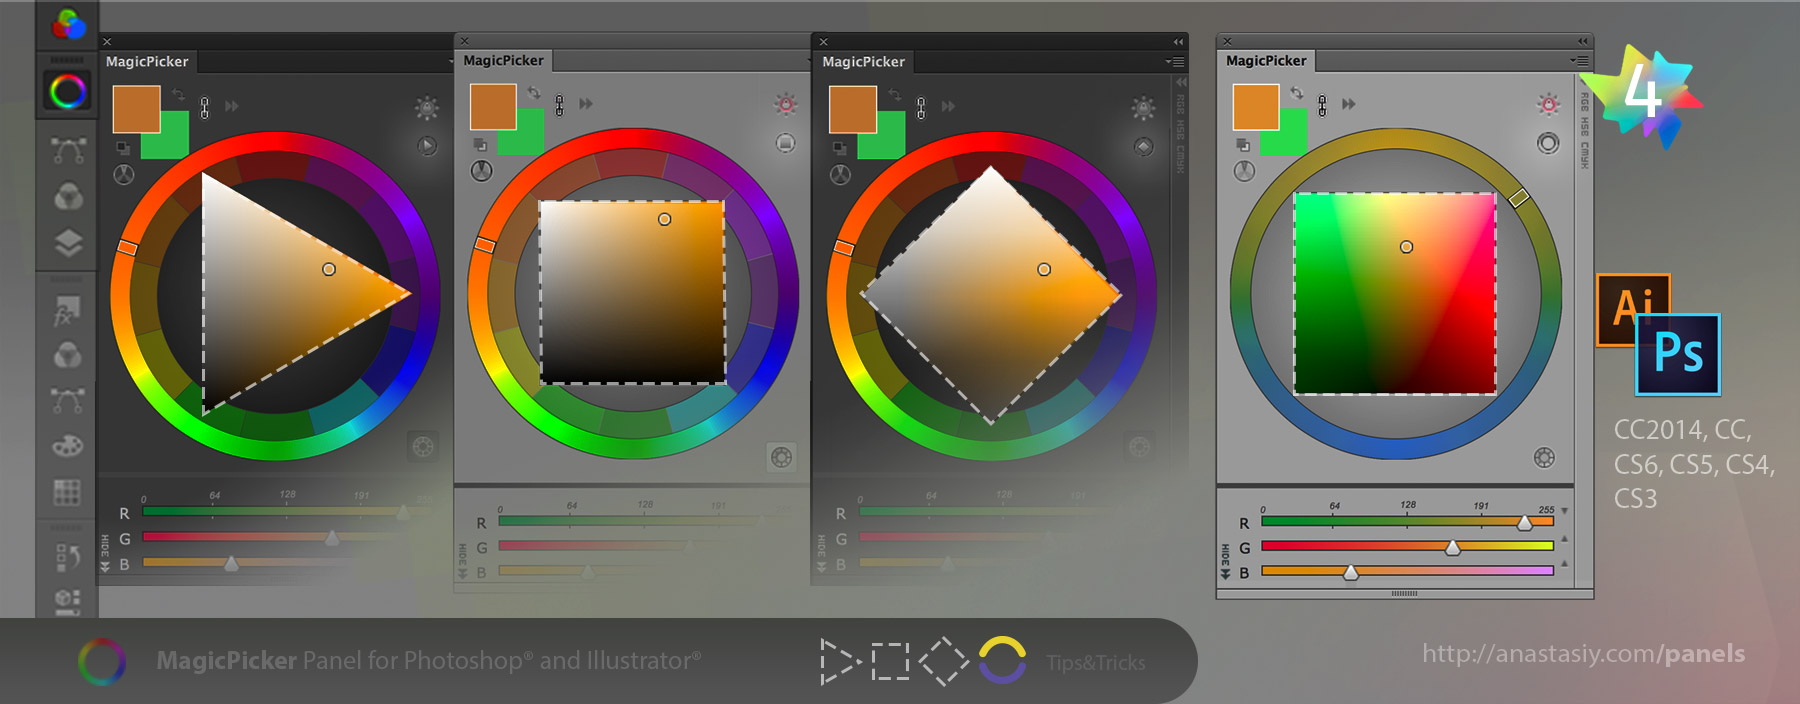 MagicPicker 4 color wheel modes